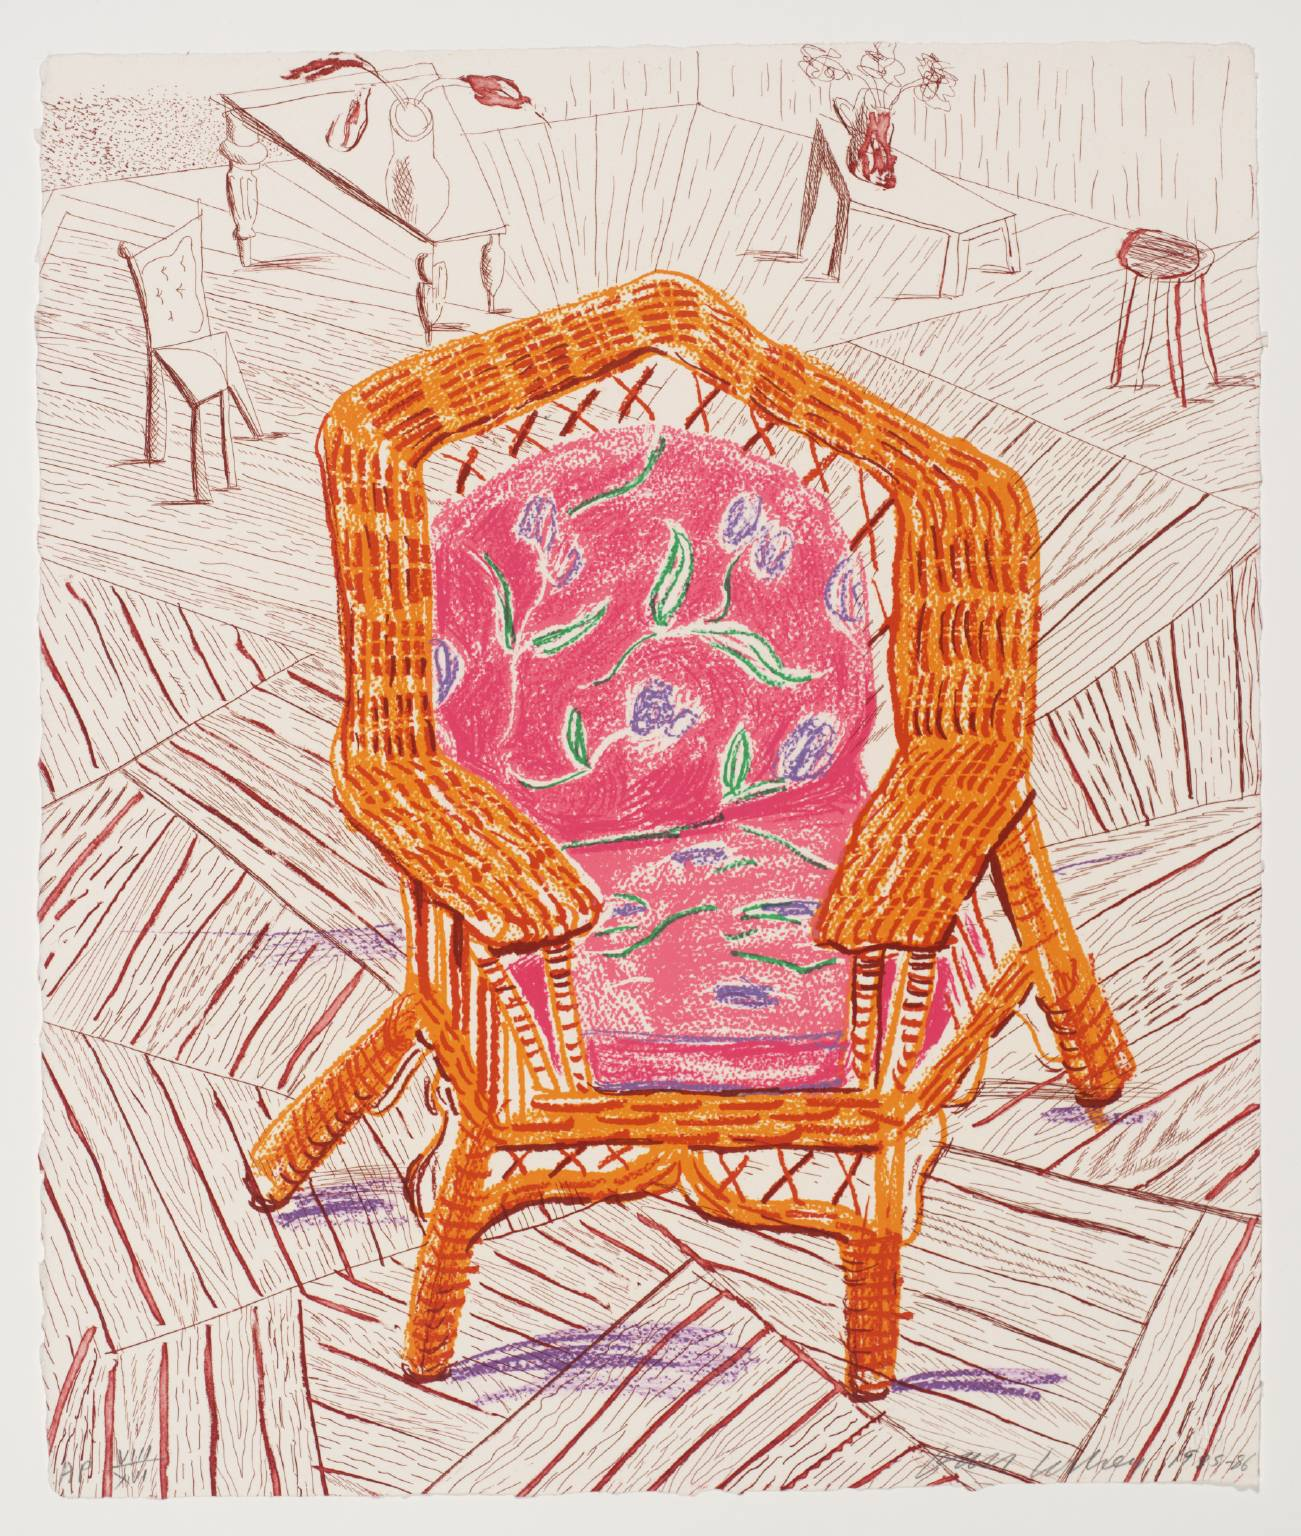 Number One Chair 1985-6 David Hockney born 1937 Presented by the artist 1993 http://www.tate.org.uk/art/work/P20126